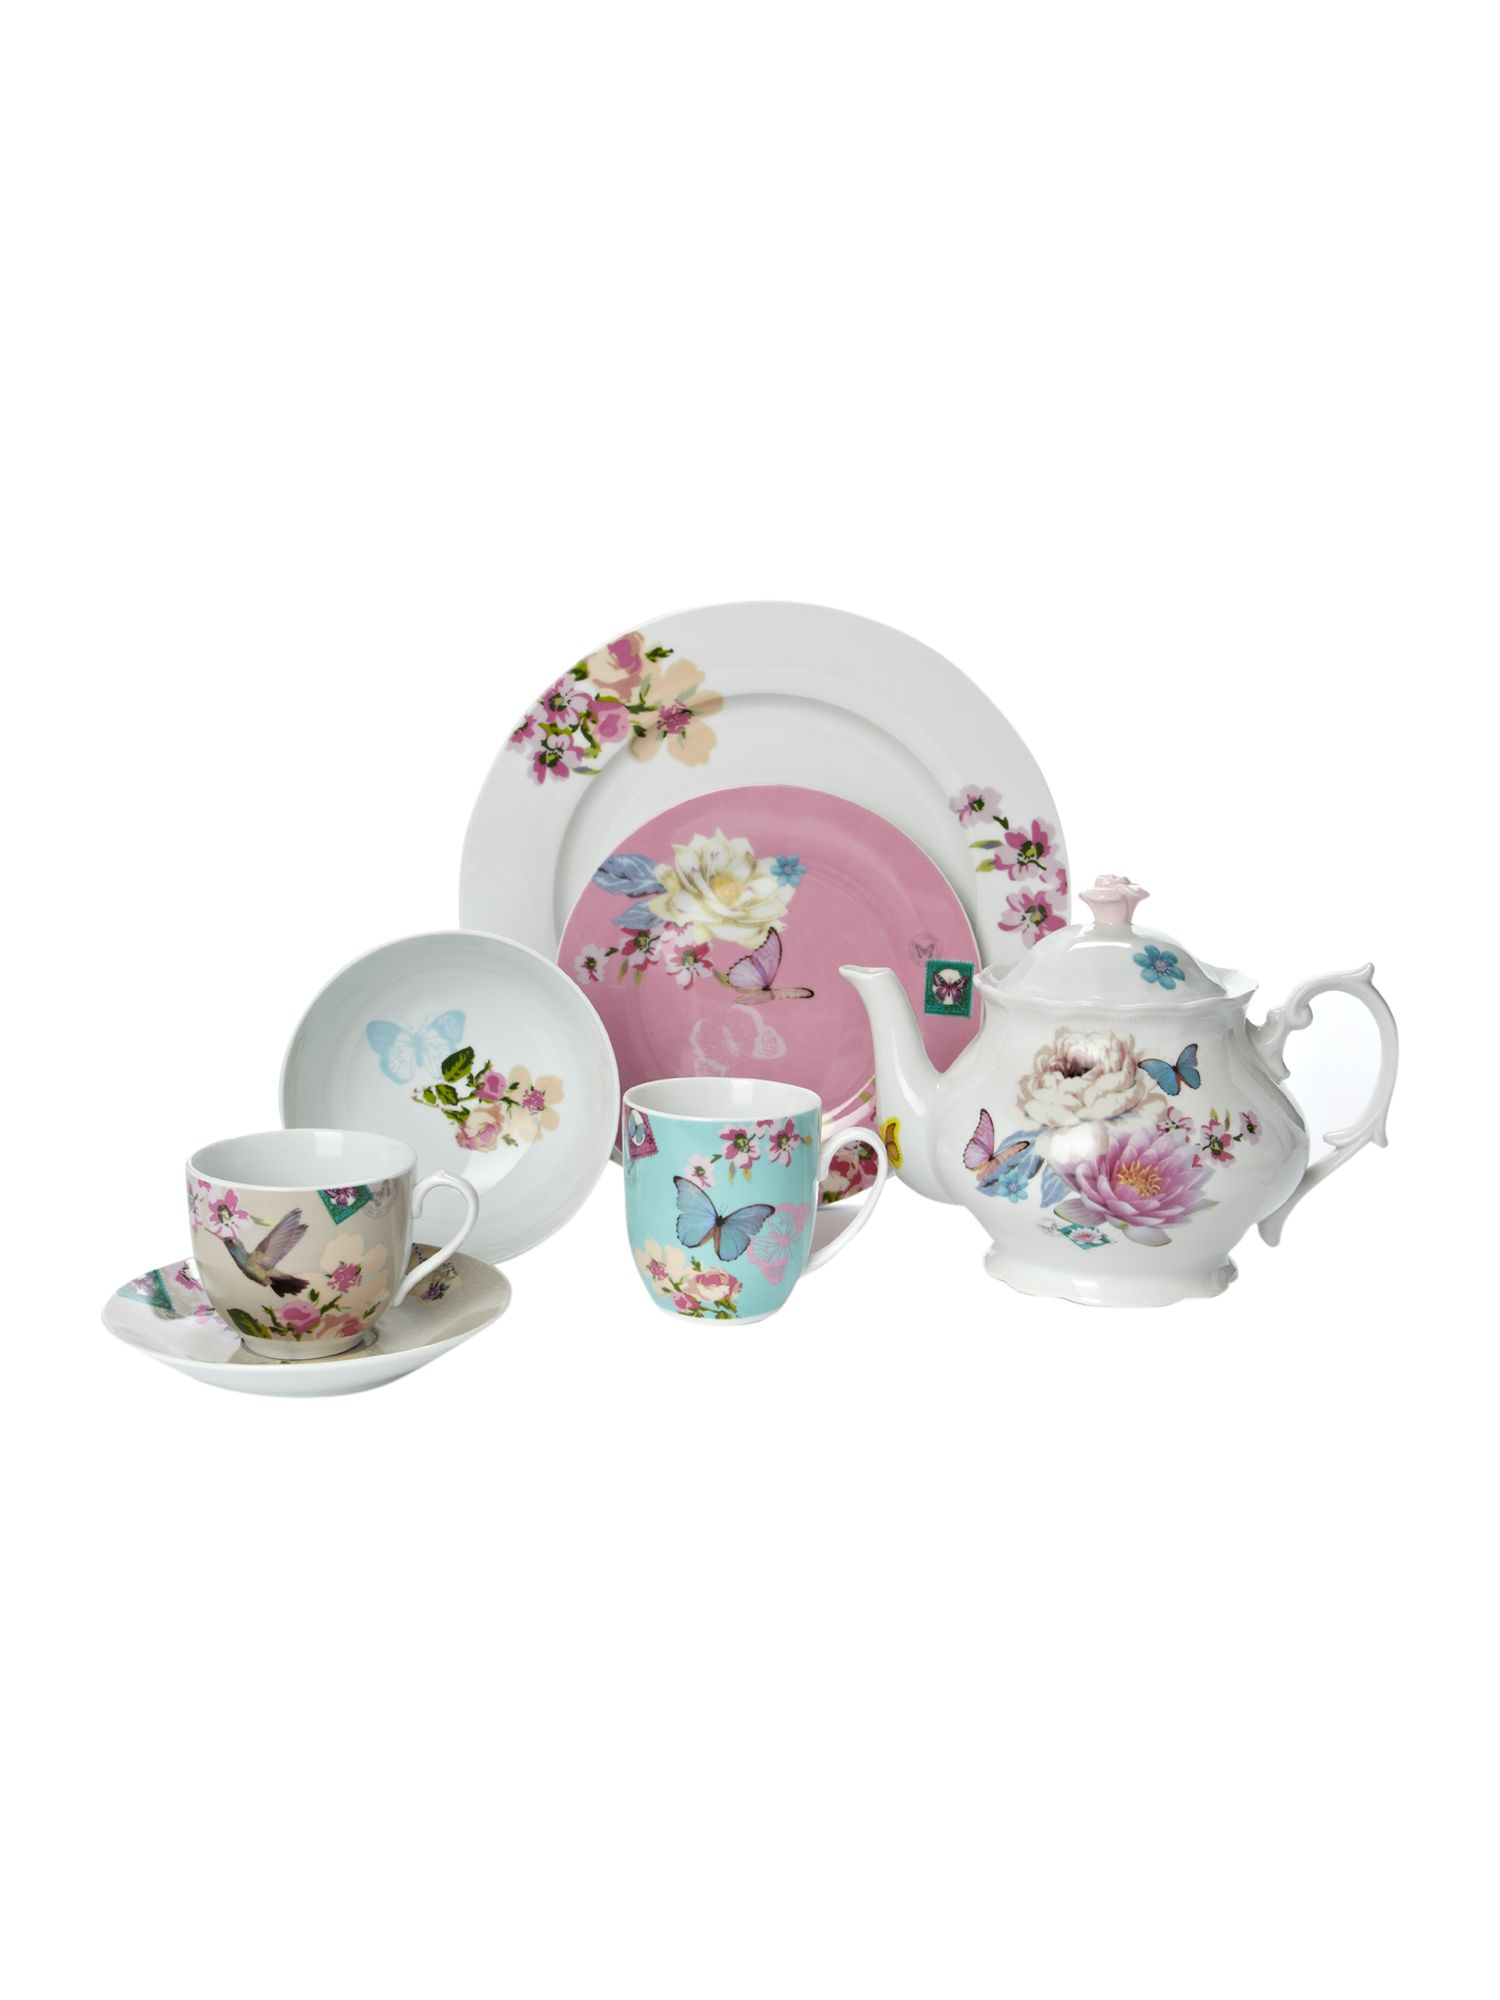 With Love dinnerware